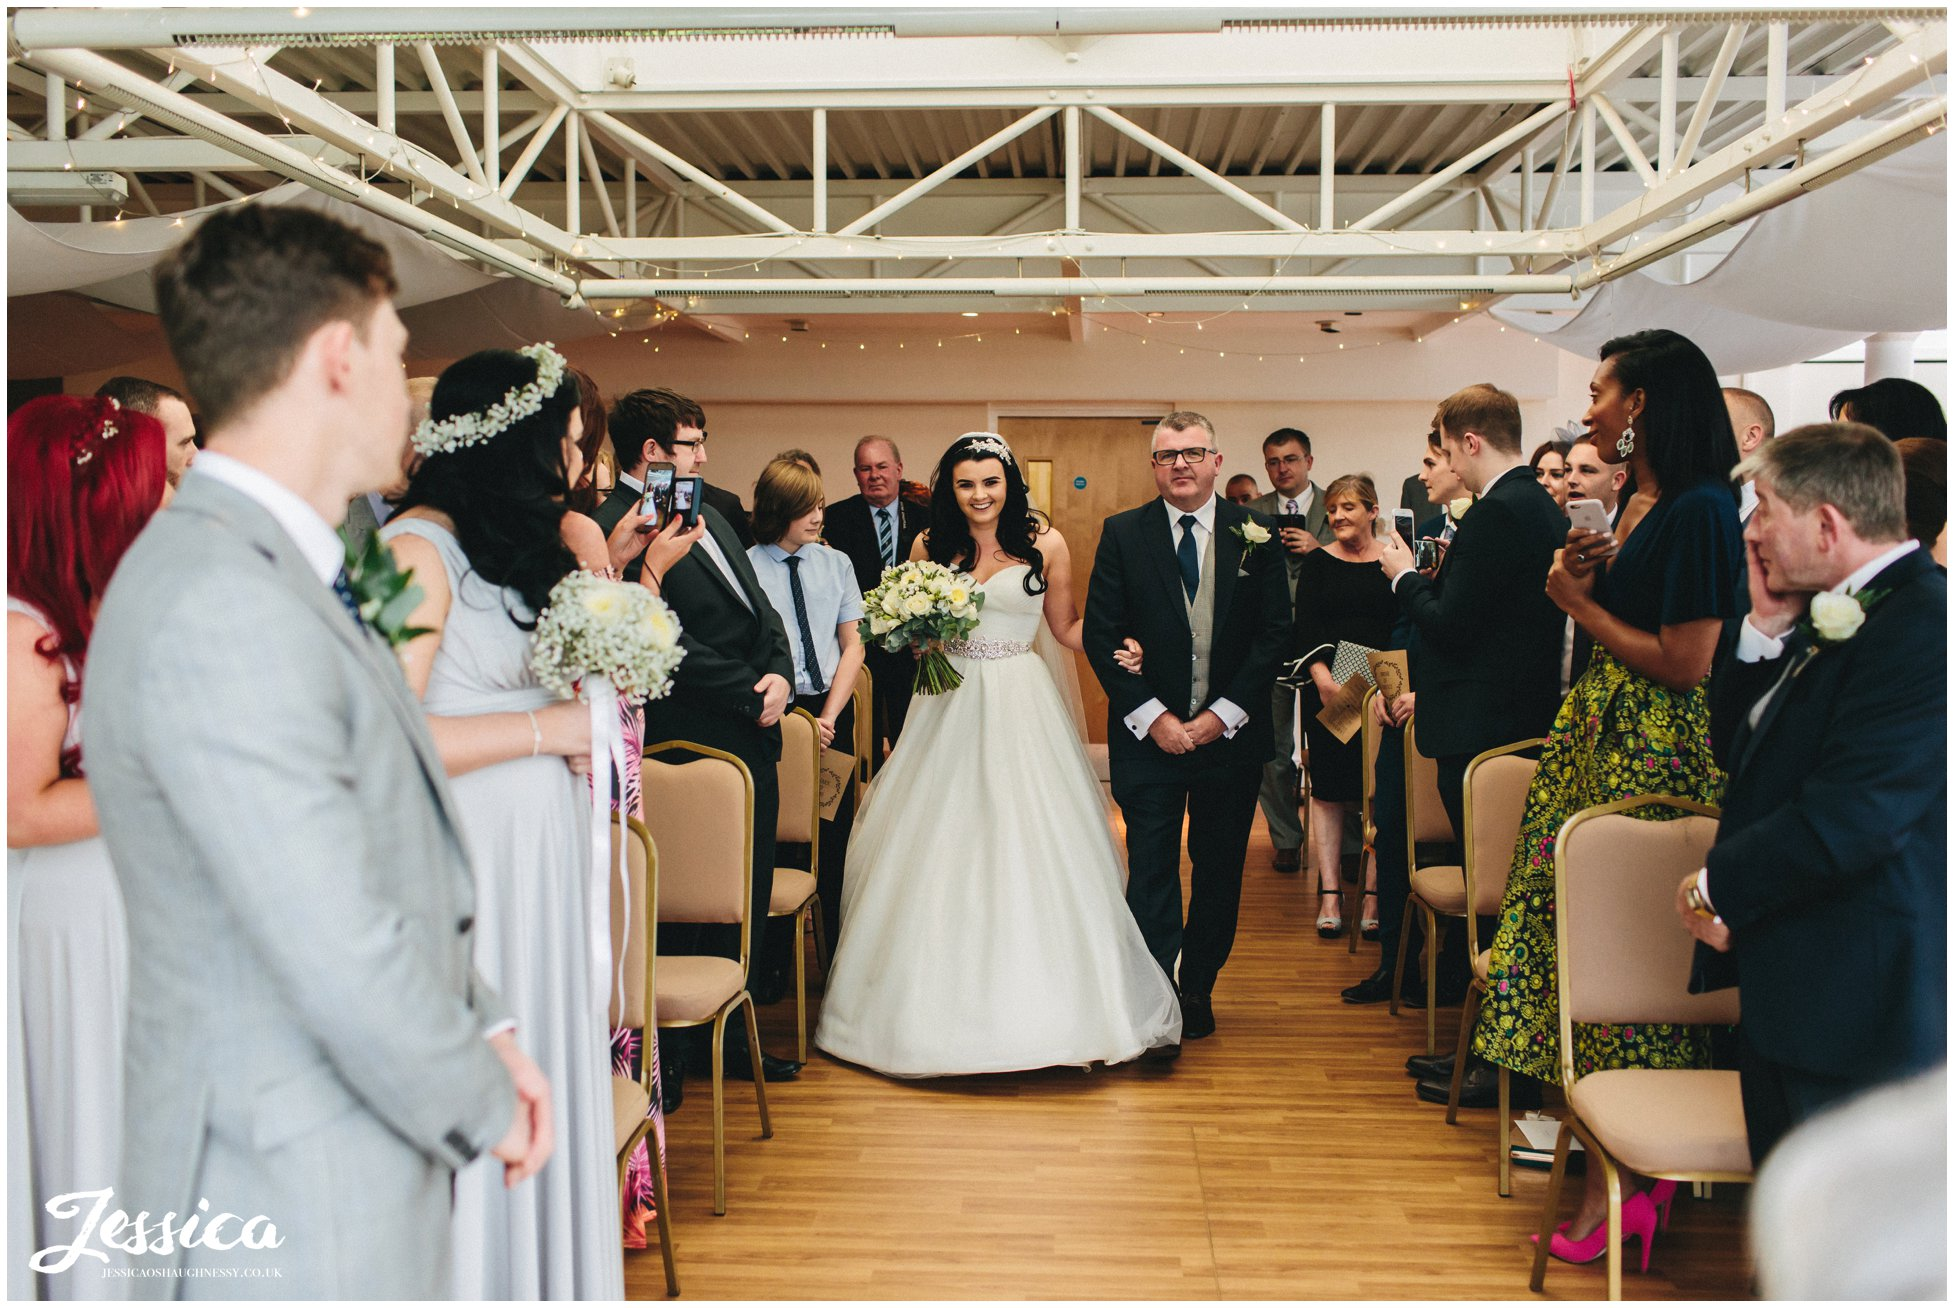 wirral wedding photographer - bride walks down aisle on her wedding day